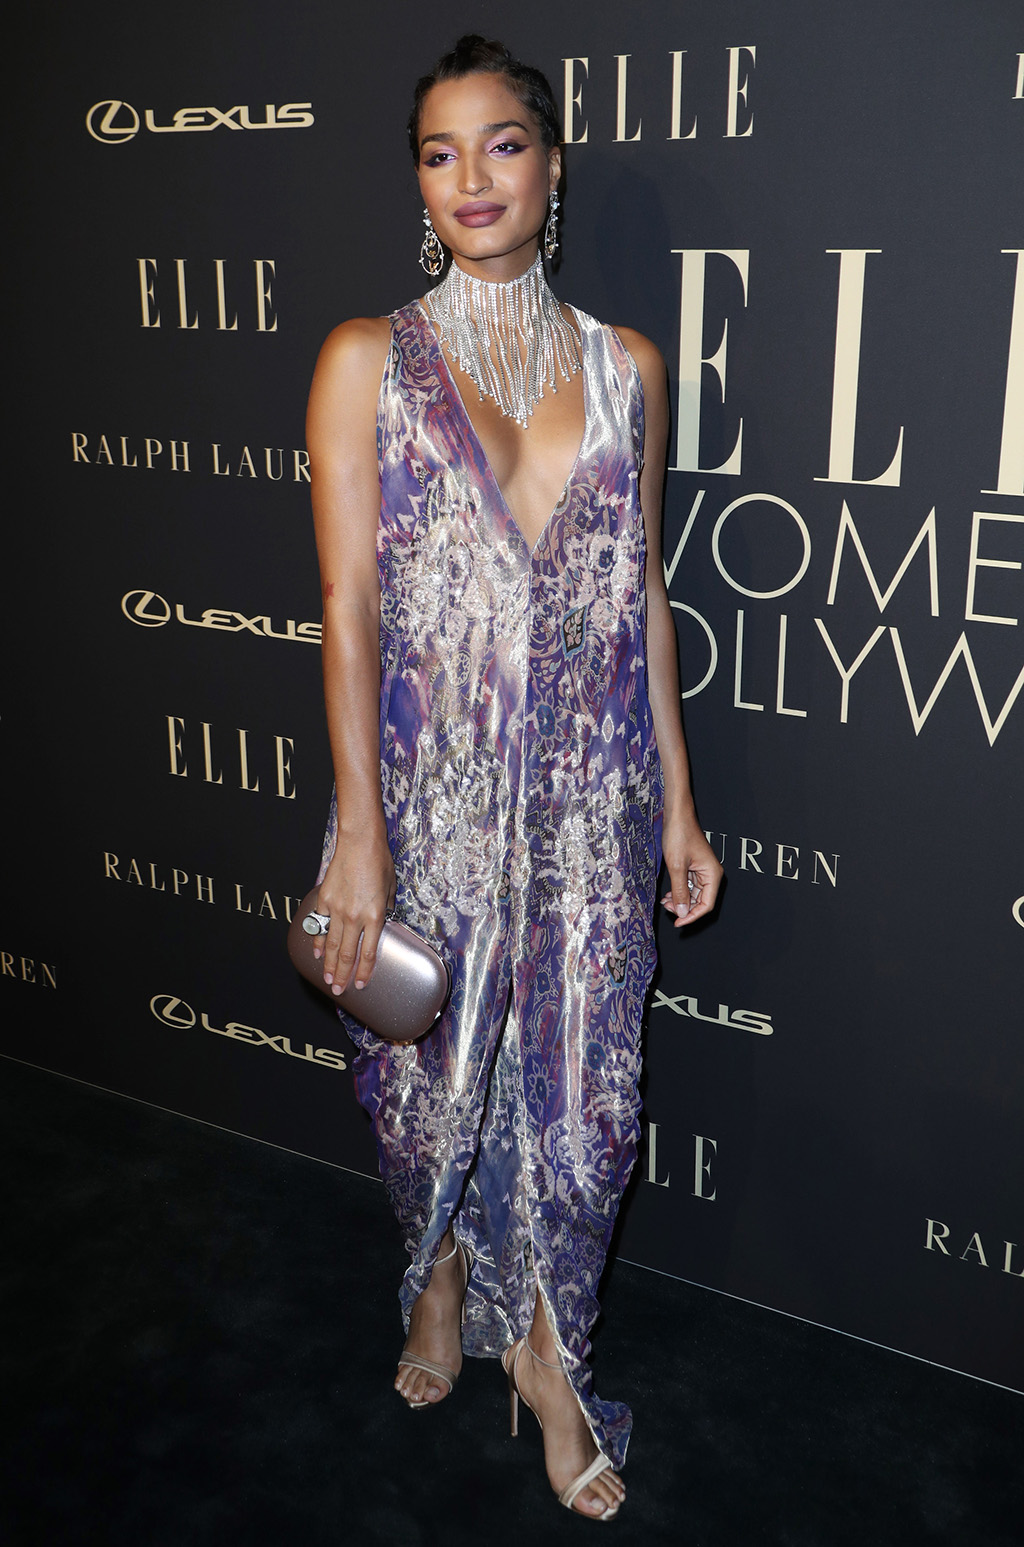 indya-moore-in-ralph-lauren-elles-2019-women-in-hollywood-event